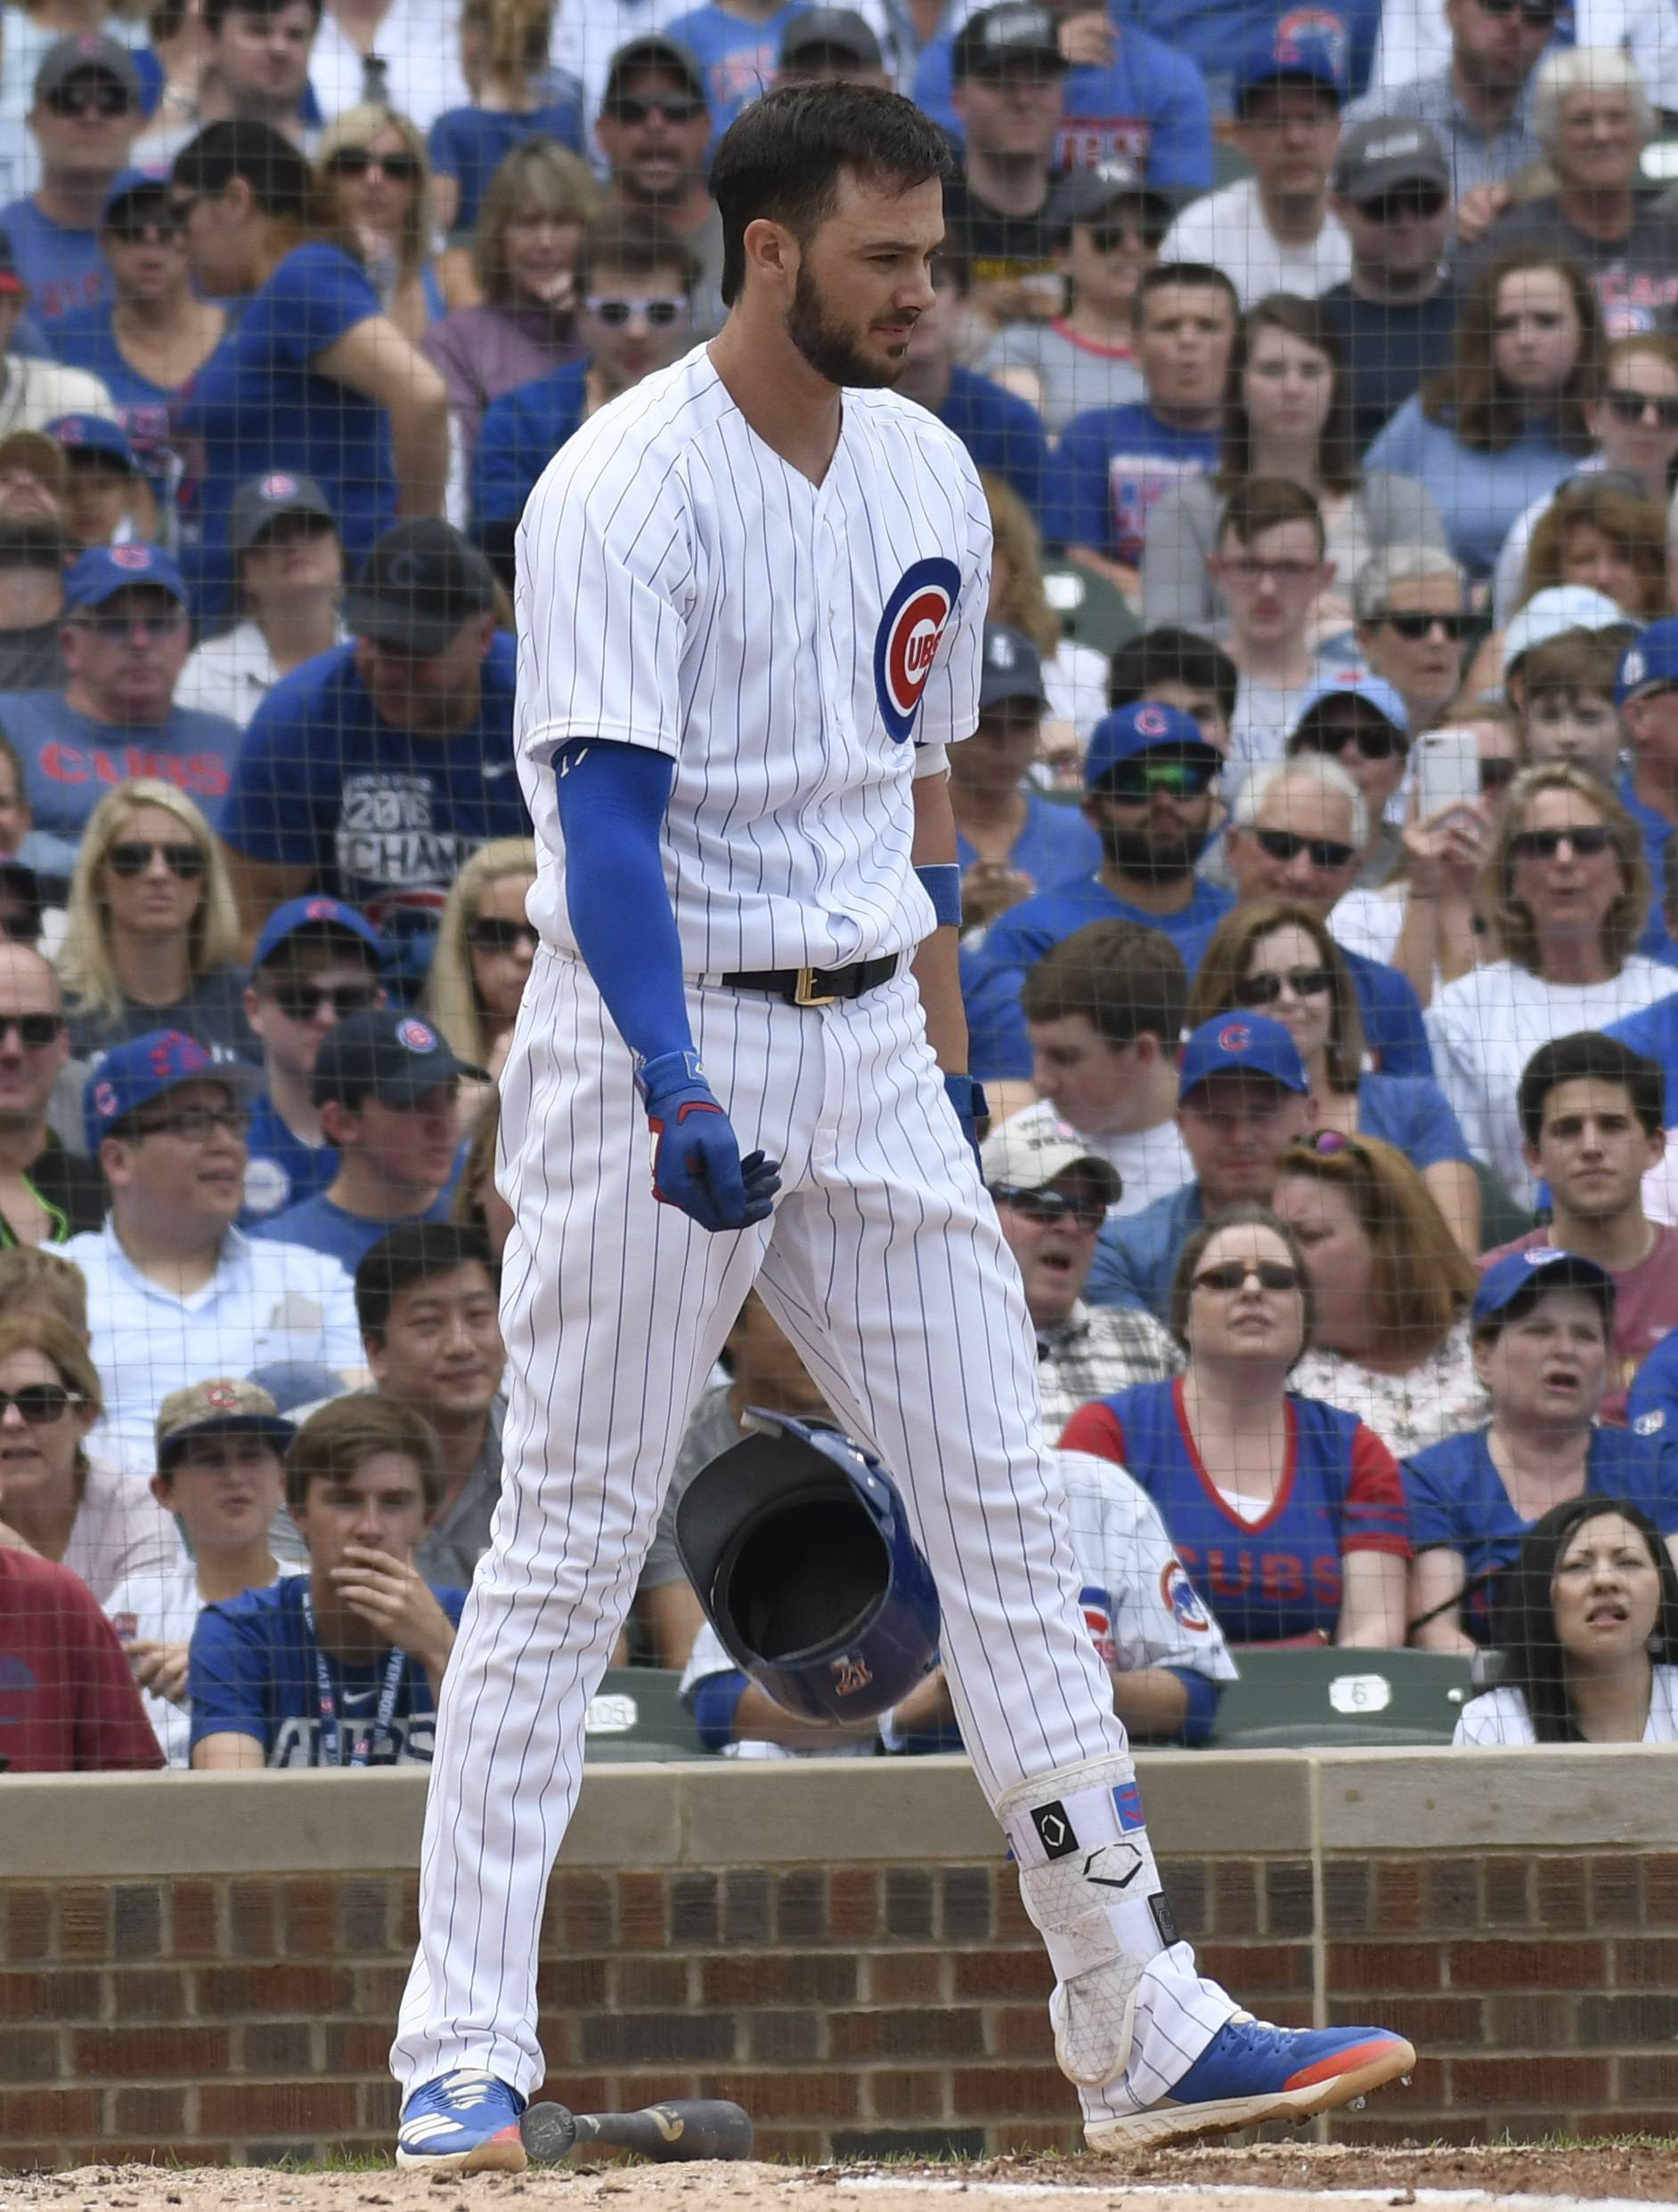 Chicago Cubs' Kris Bryant reacts after striking out against the Pittsburgh Pirates during the second inning of a baseball game Saturday, June 9, 2018, in Chicago.